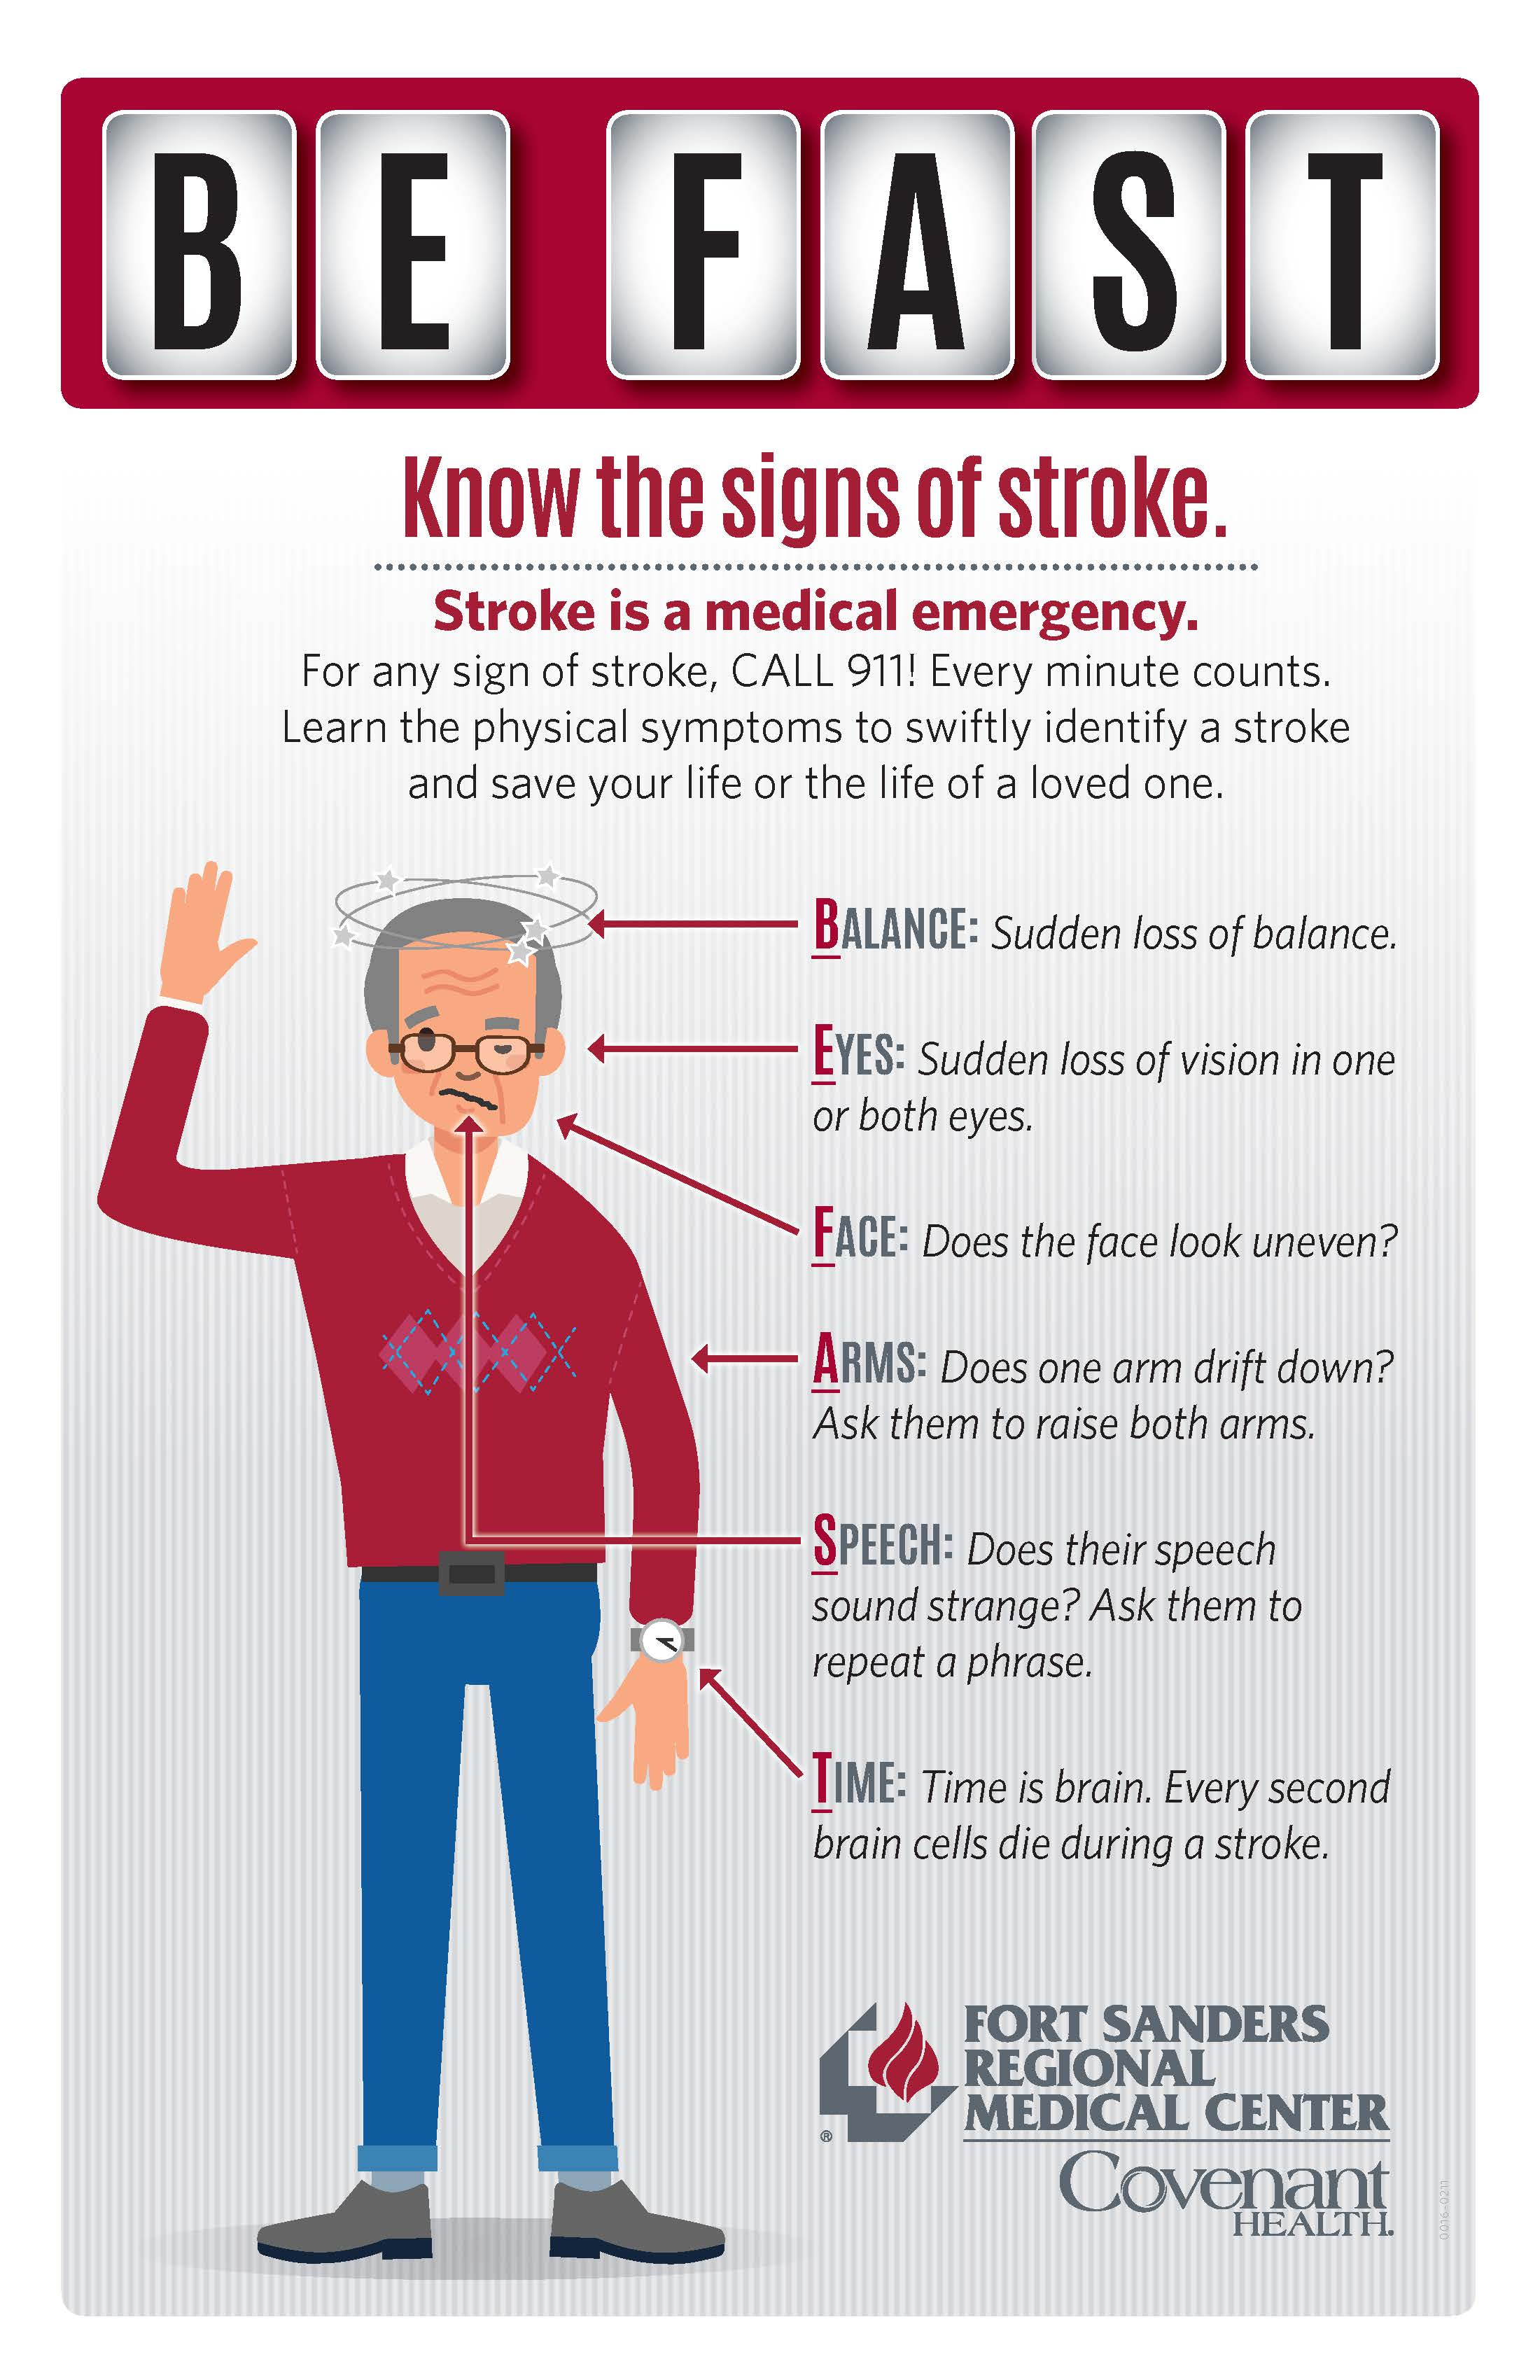 know the signs of stroke. BEFAST.